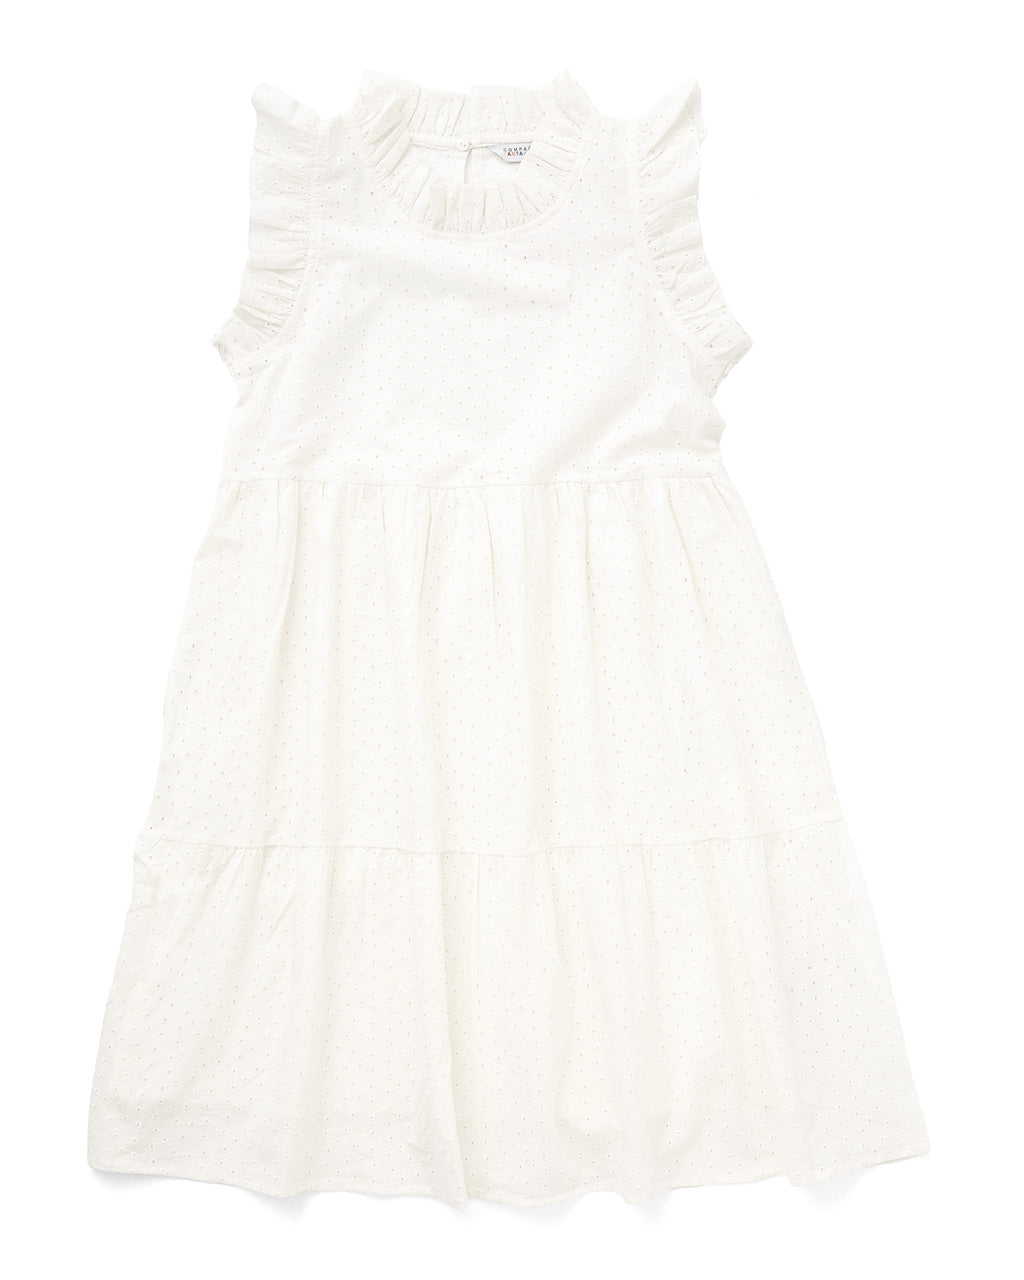 white ruffle tank dress with tiered layers